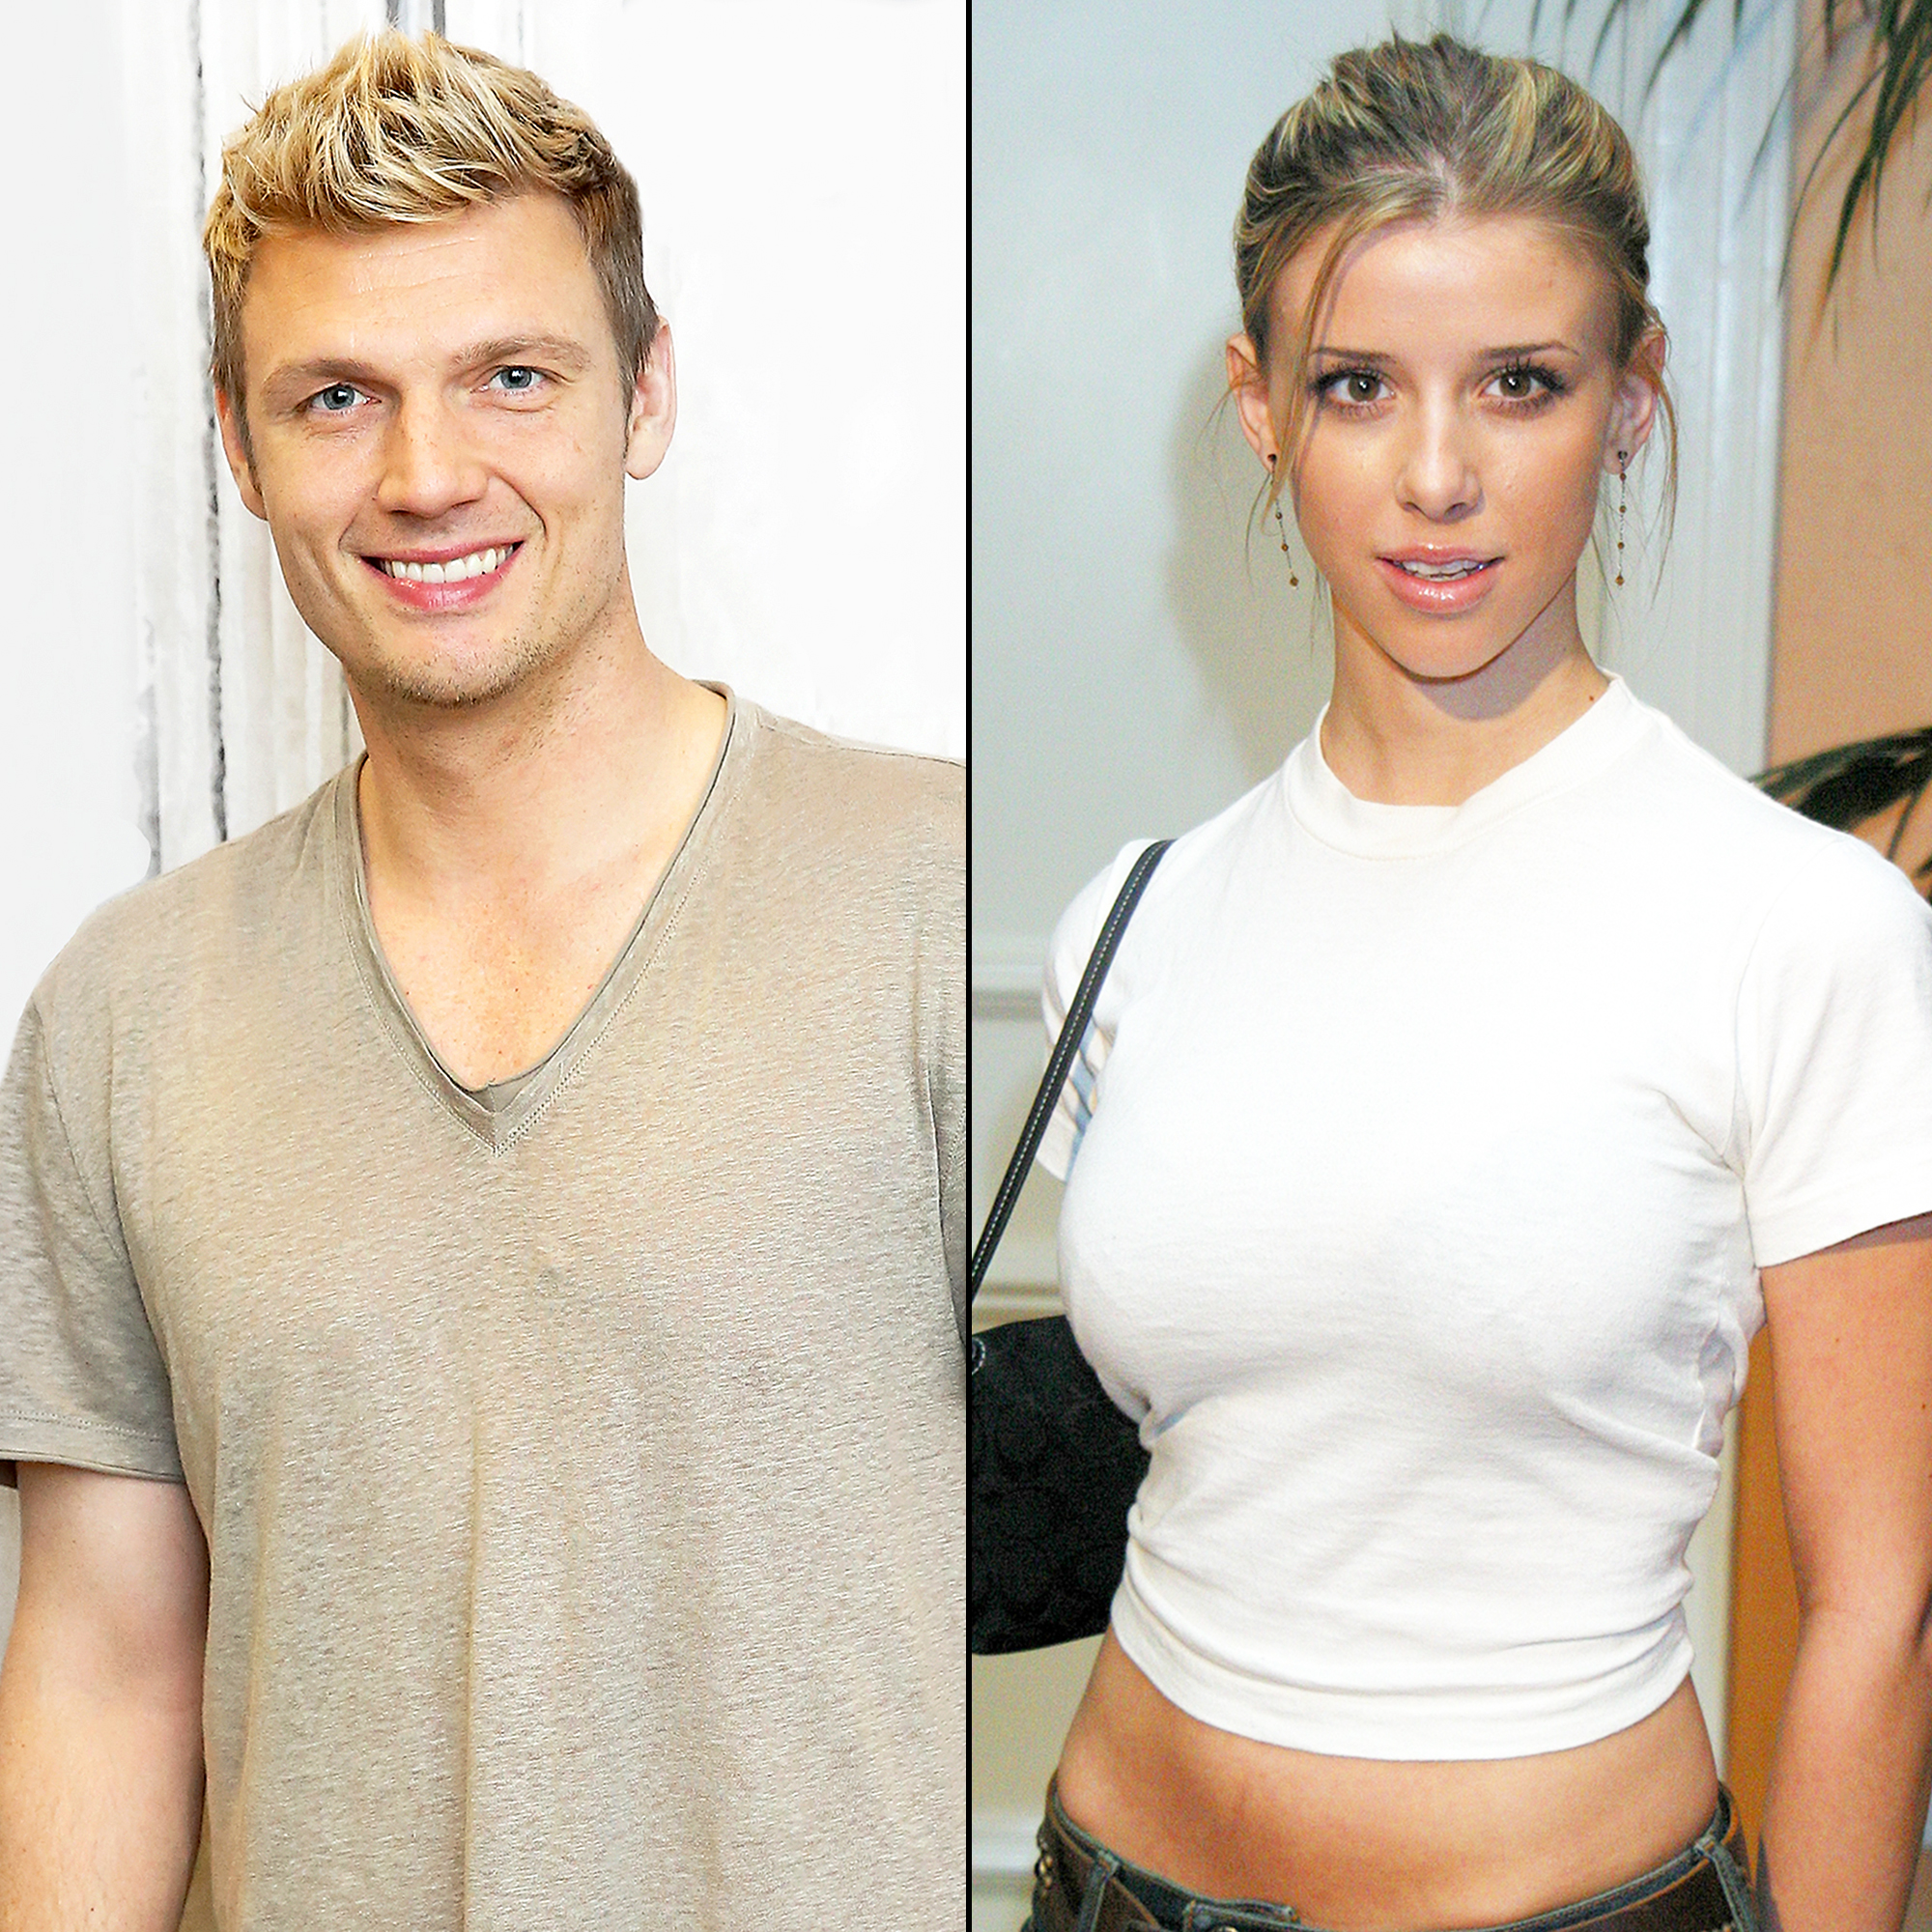 Nick Carter and Melissa Schuman